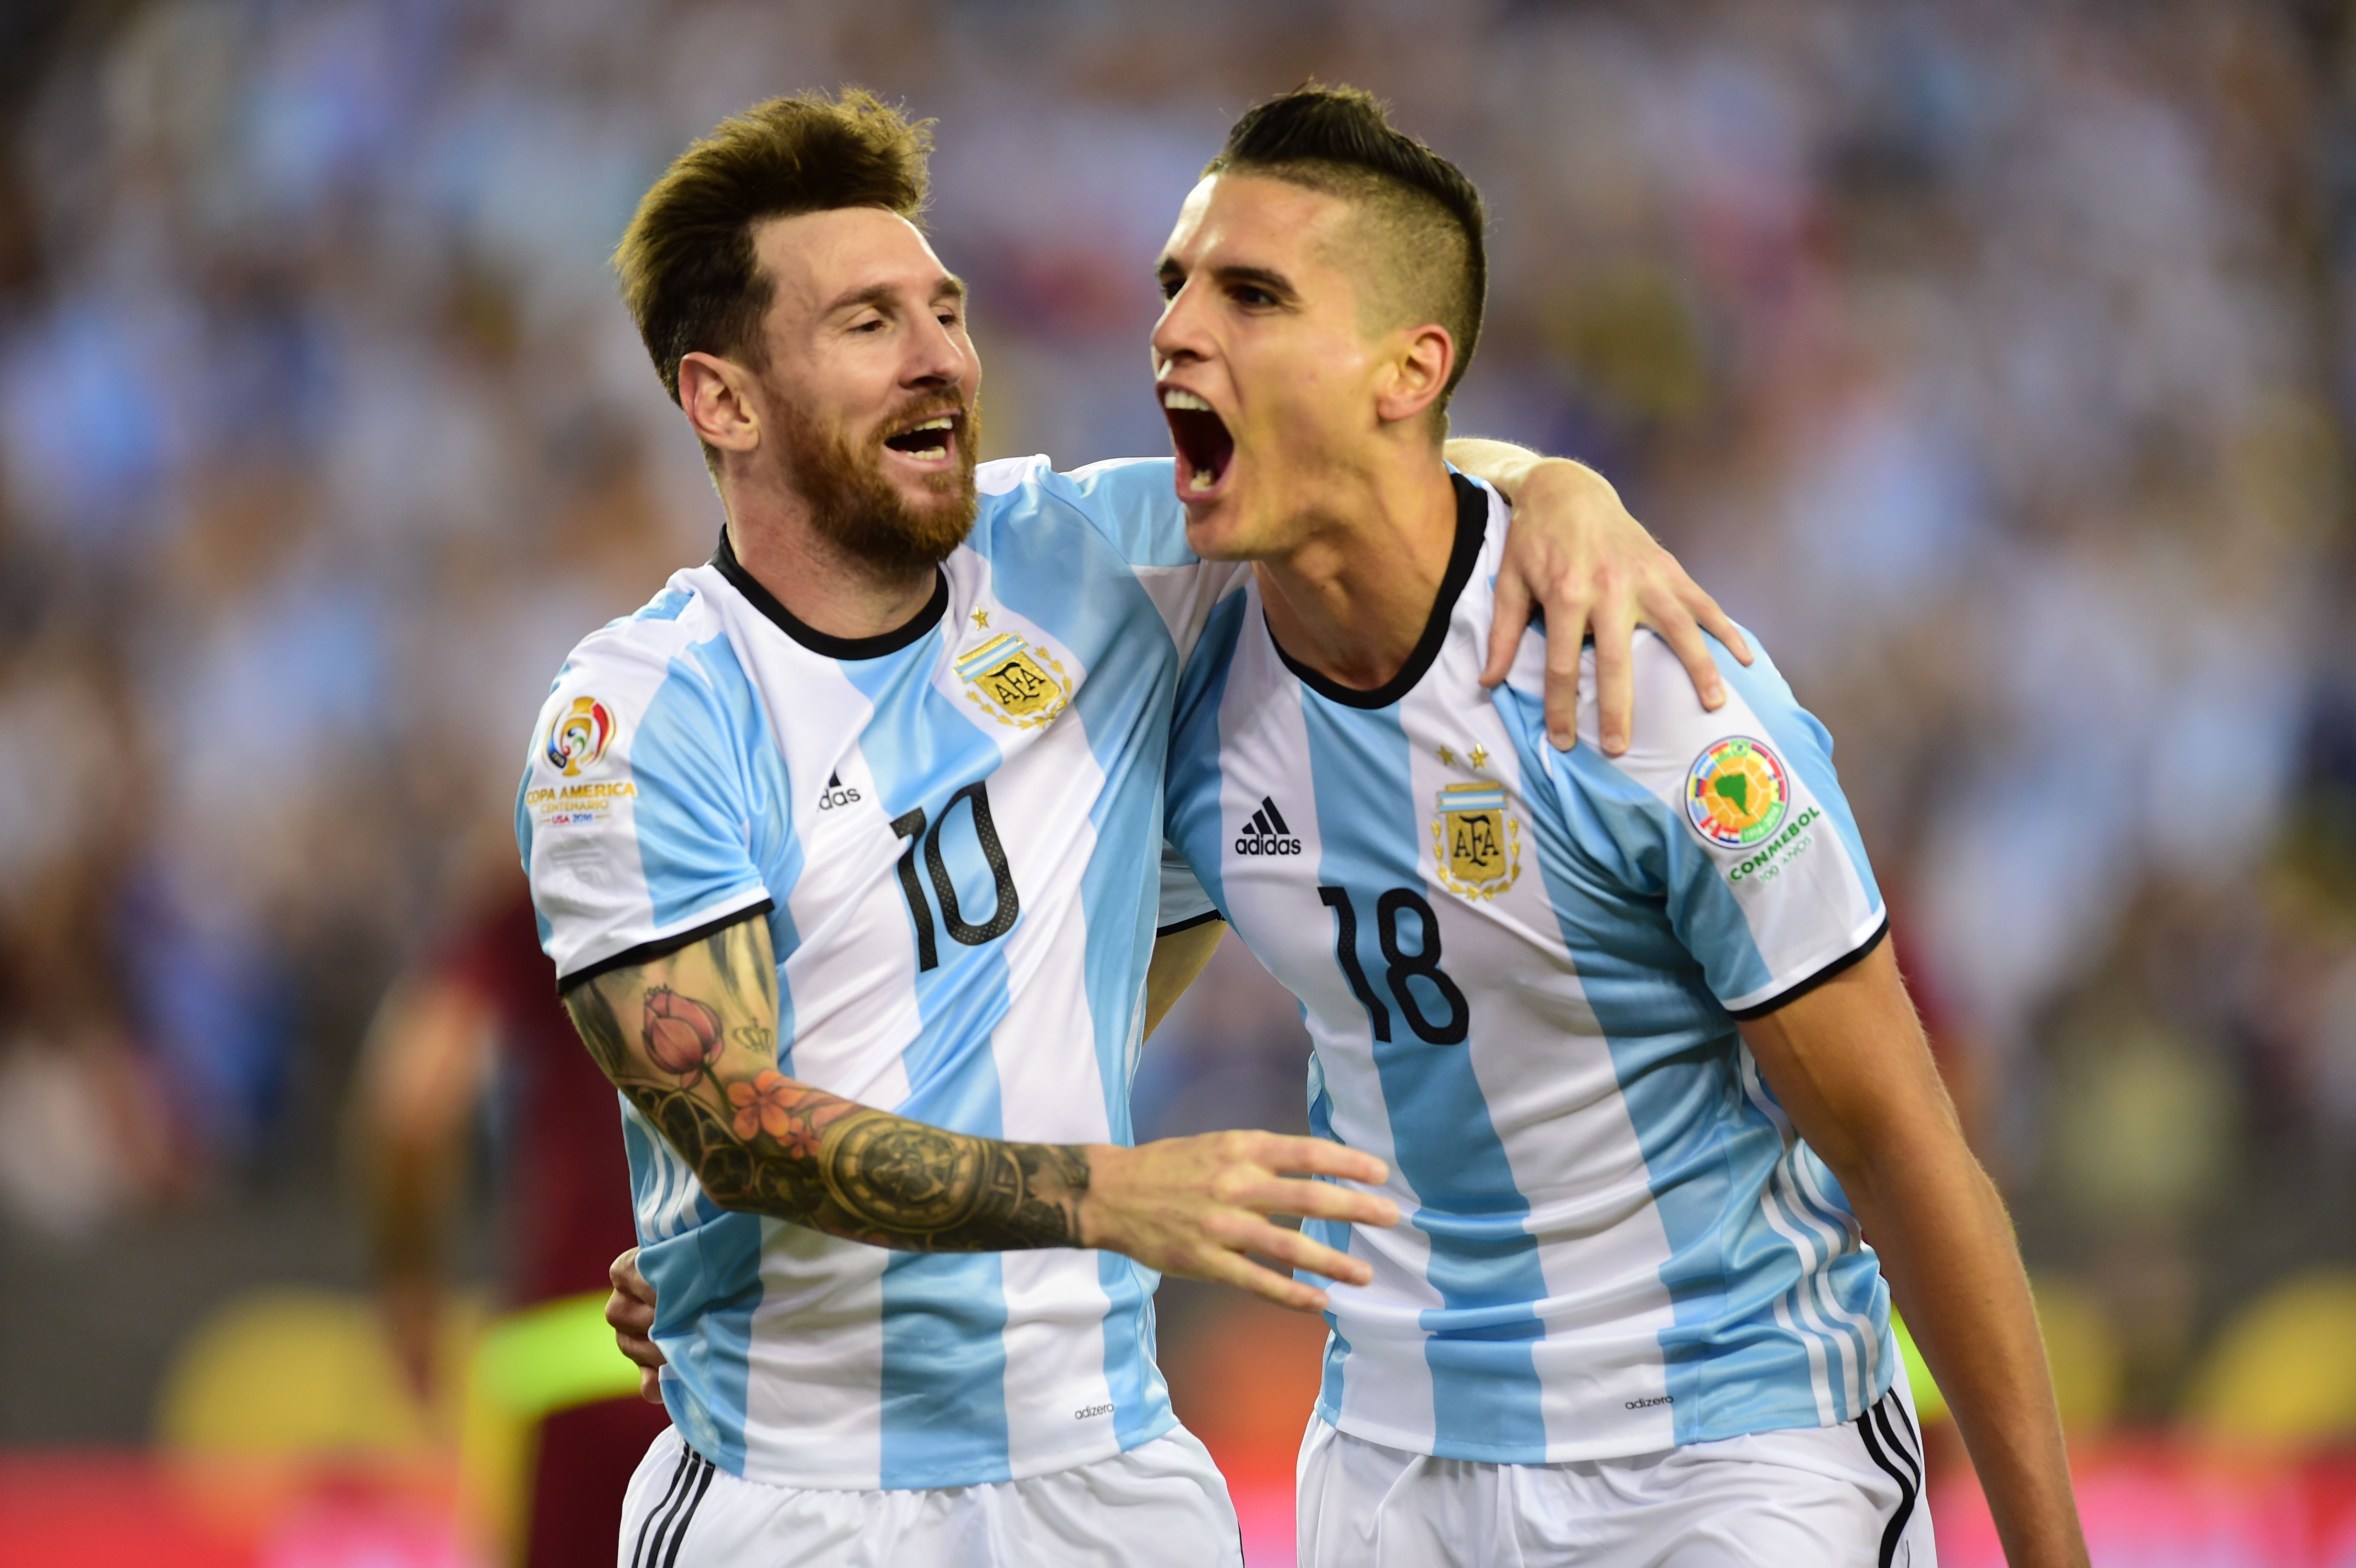 The pair have enjoyed a good relationship on the pitch for Argentina